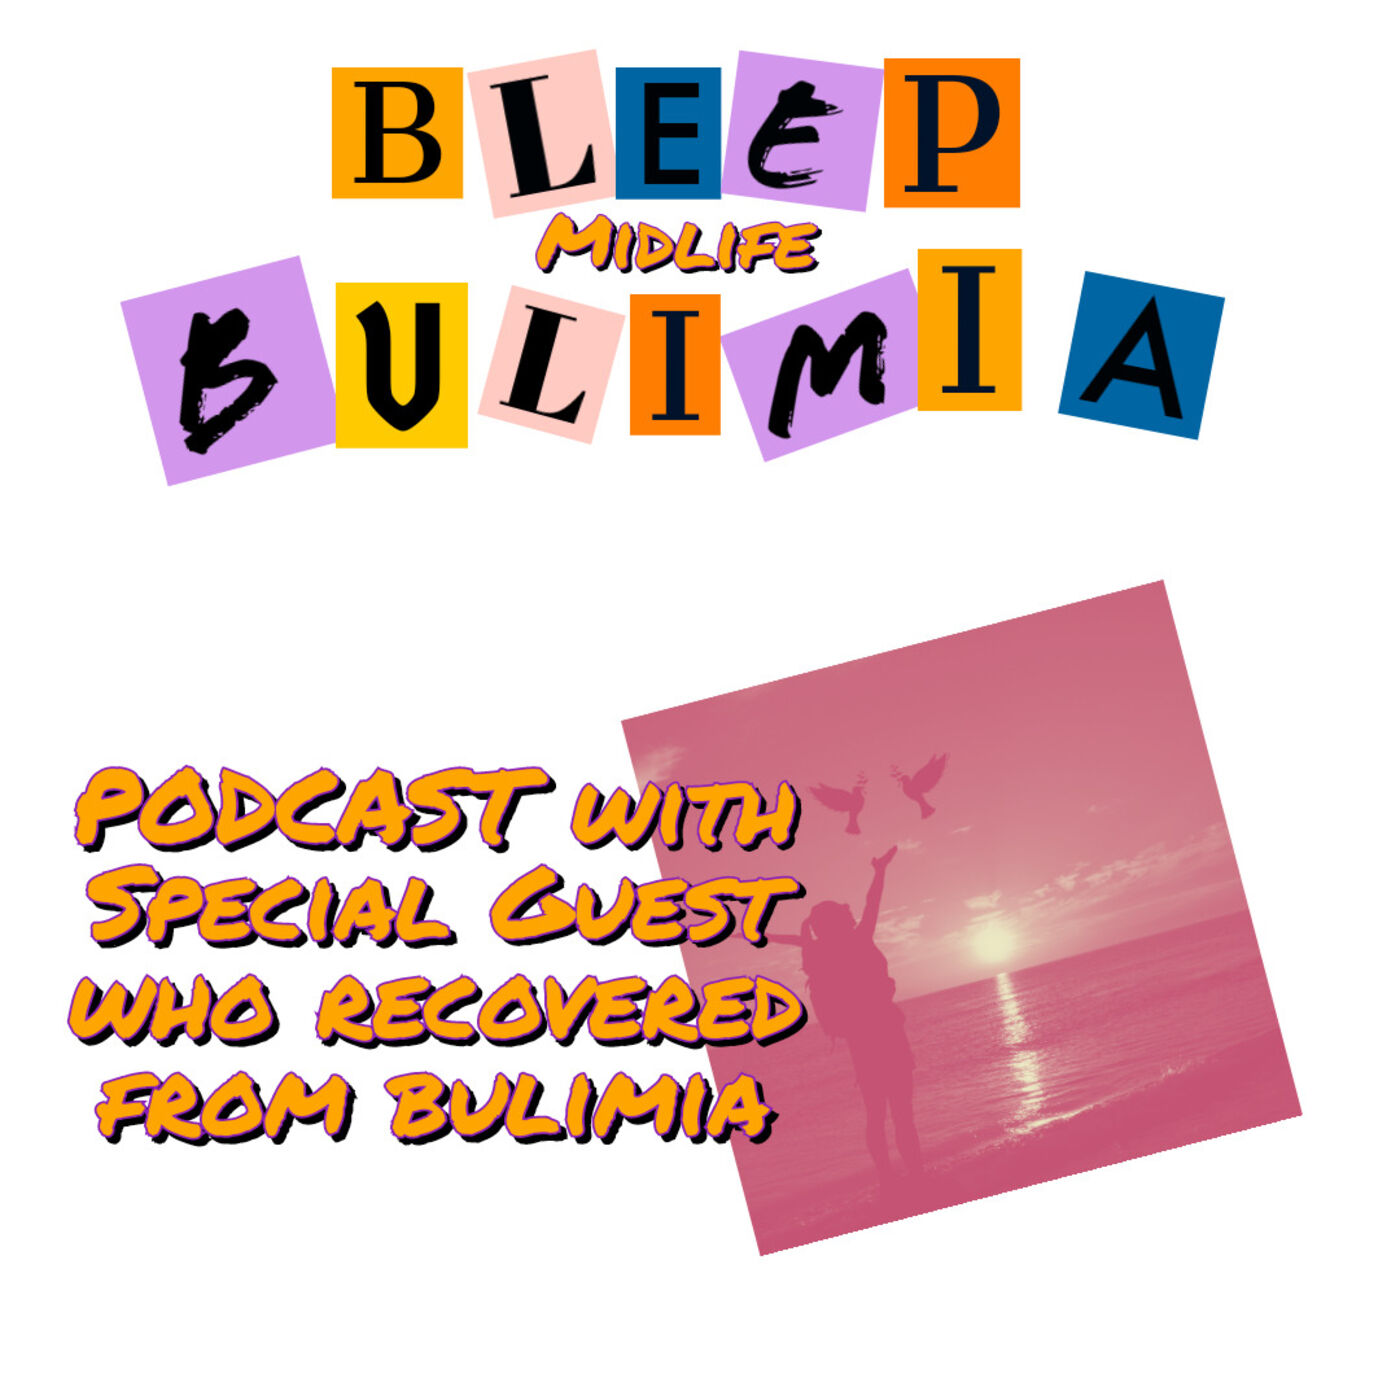 Bleep Bulimia Episode 51 Guest Speaks About Full Recovery